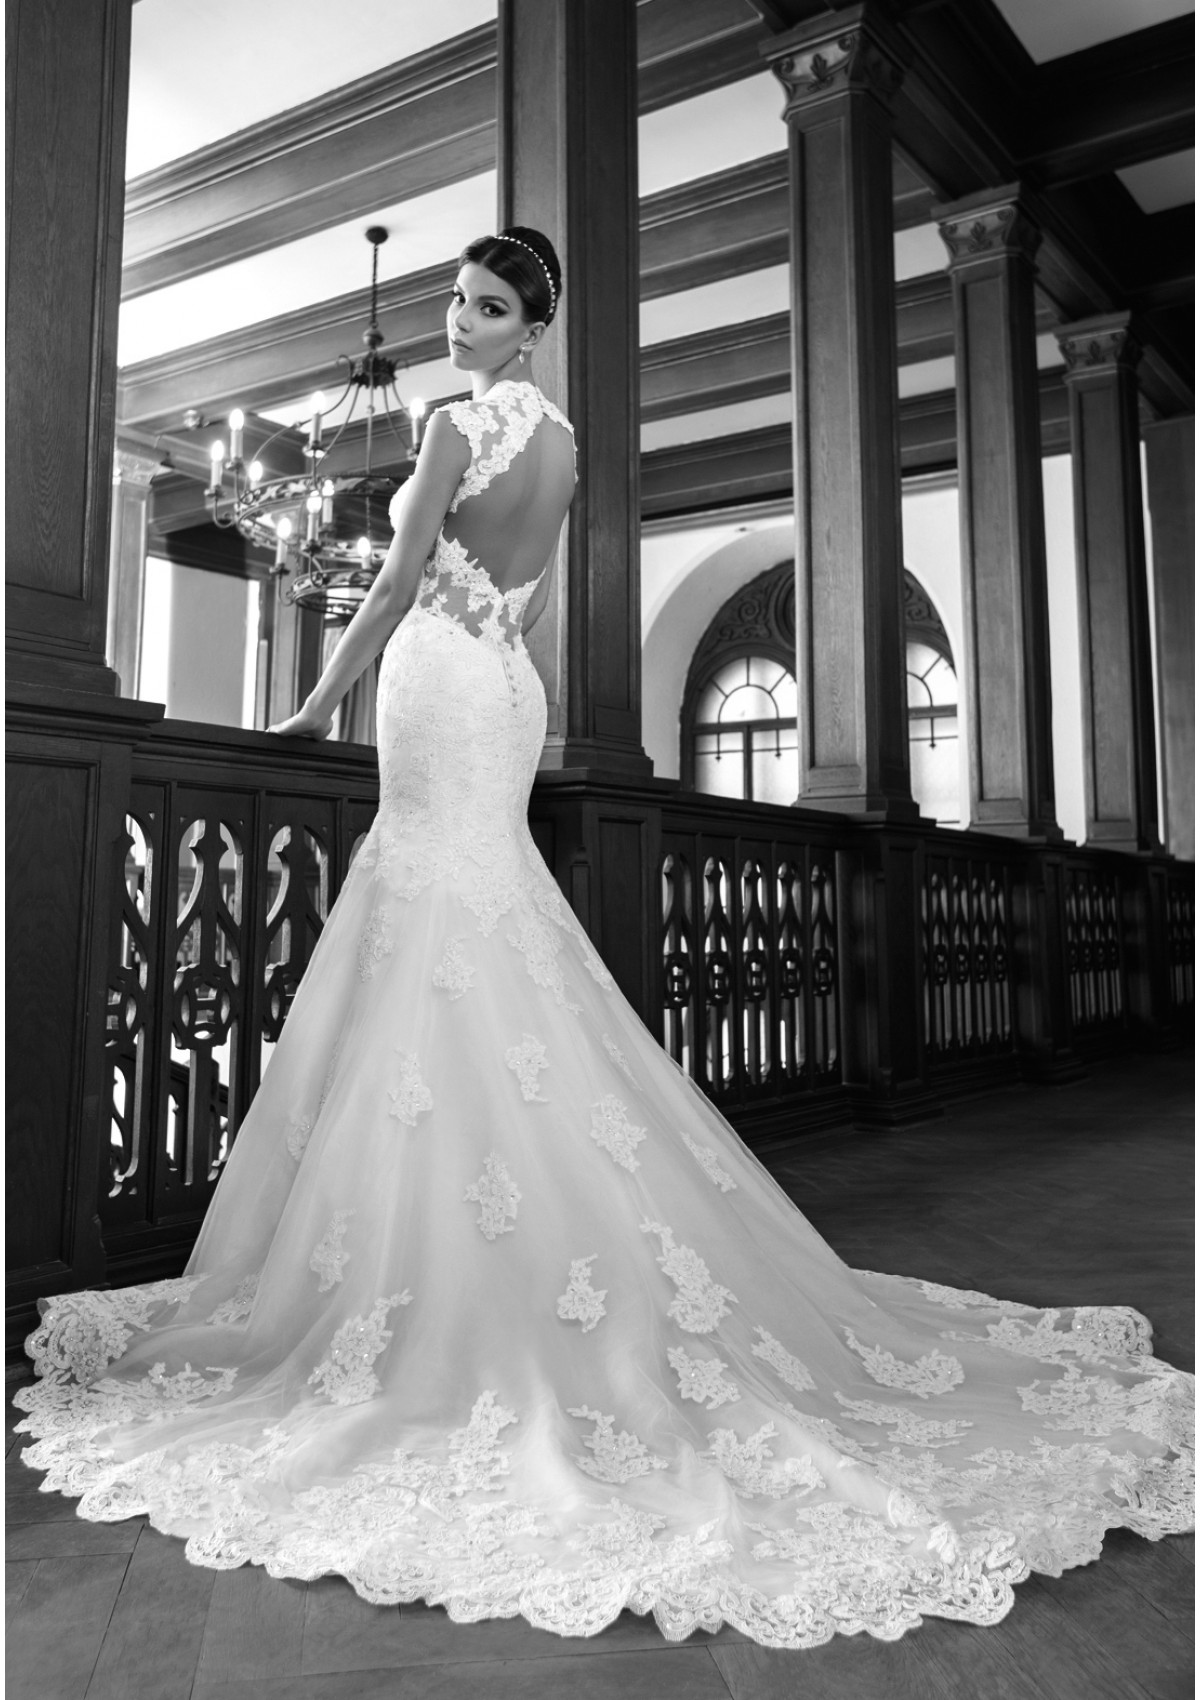 bien-savvy-wedding-dresses-5-08272014nz